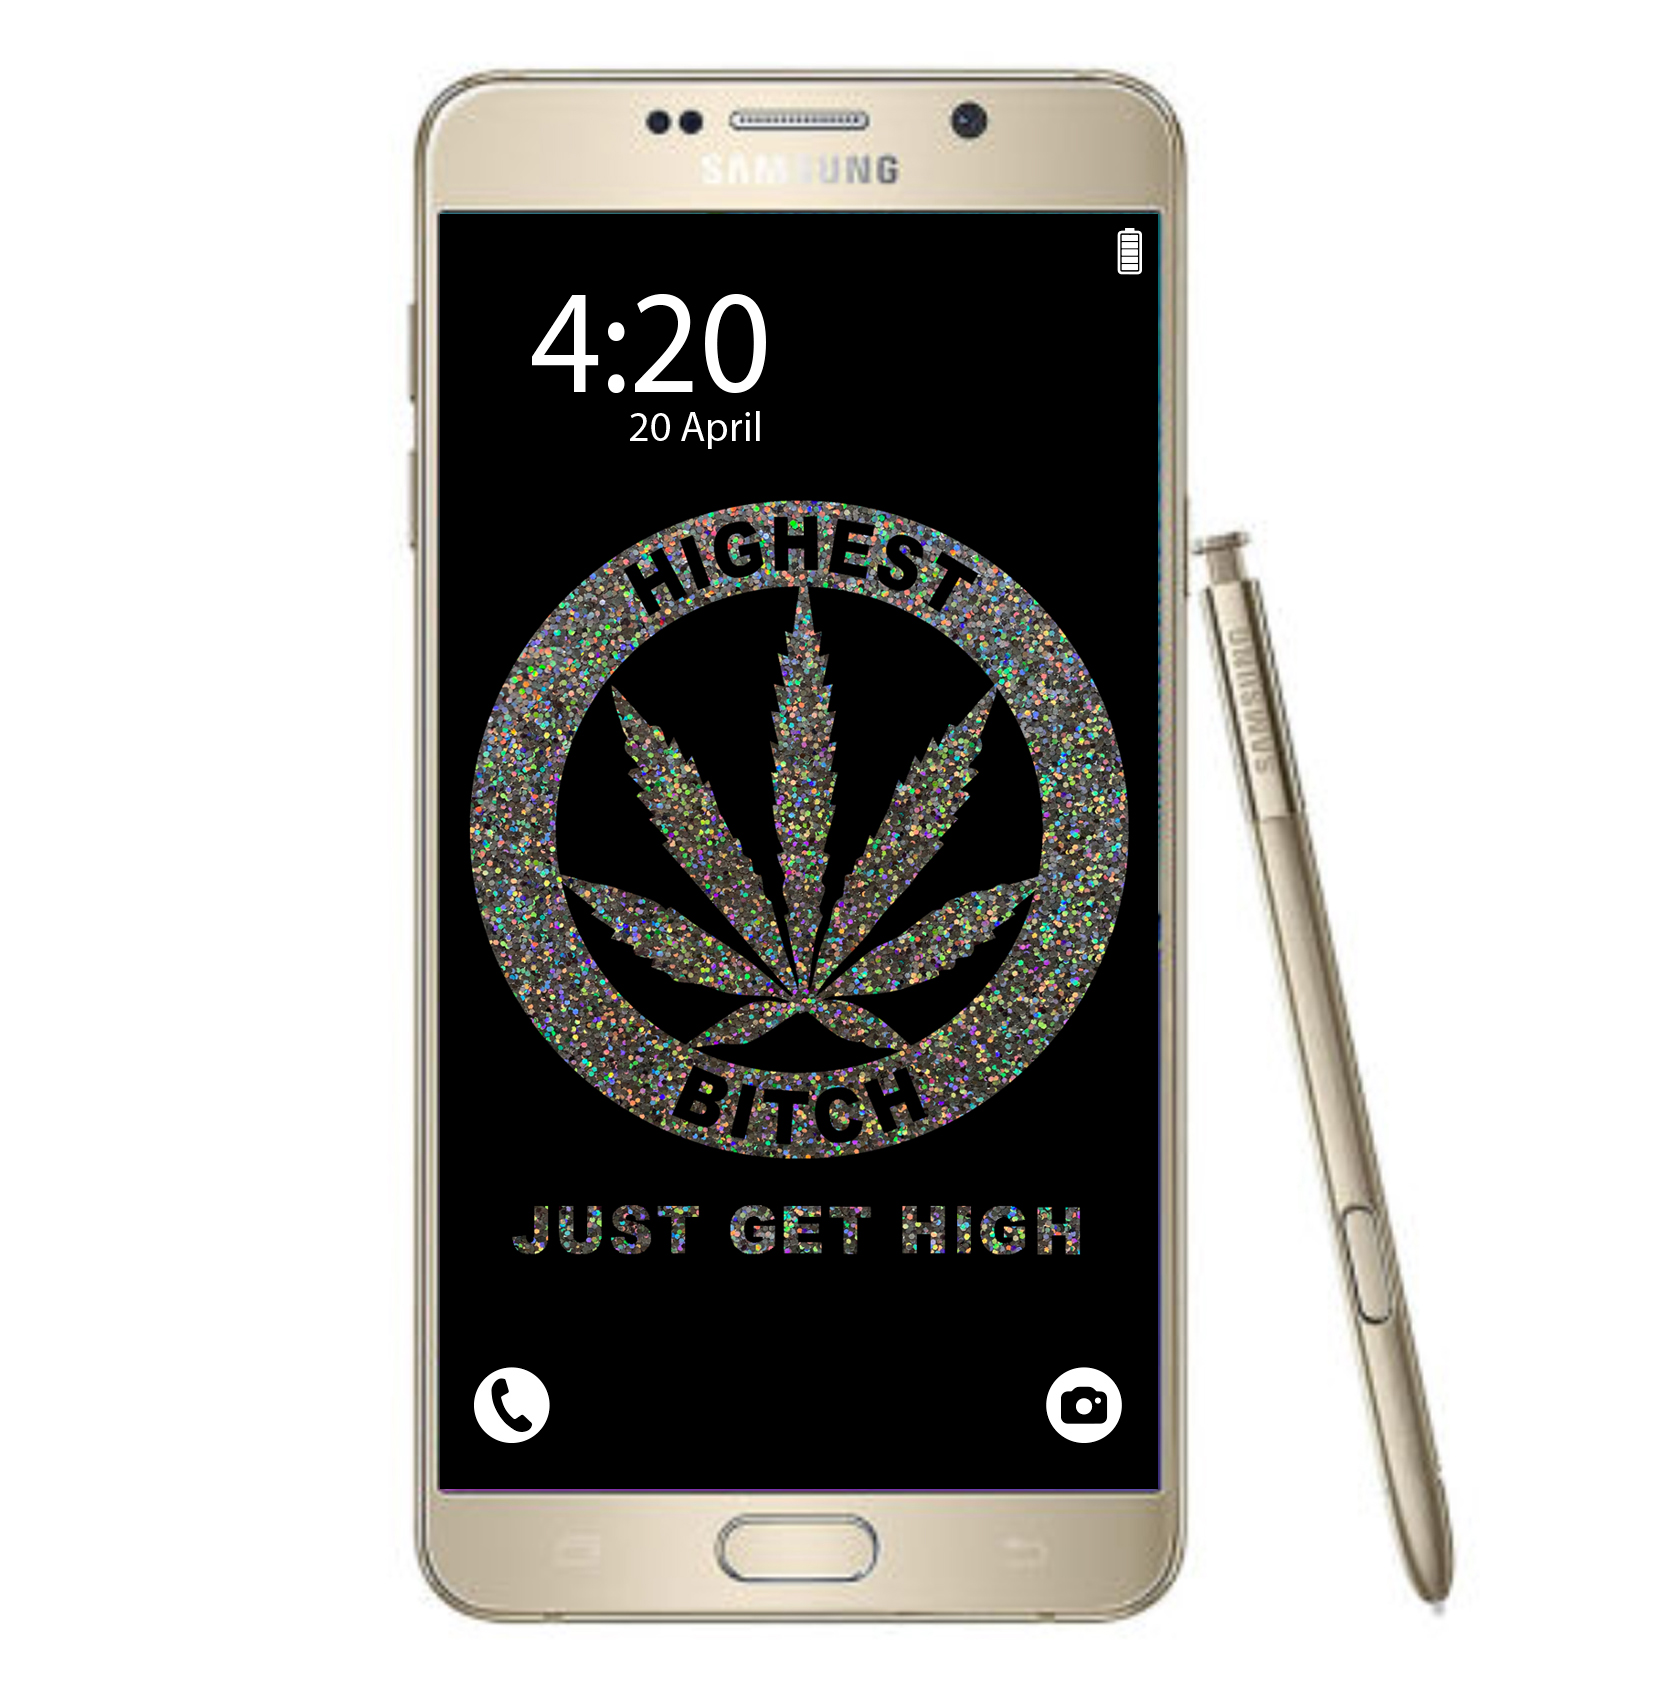 just get high_samsung_highest bitch glitter_mockup